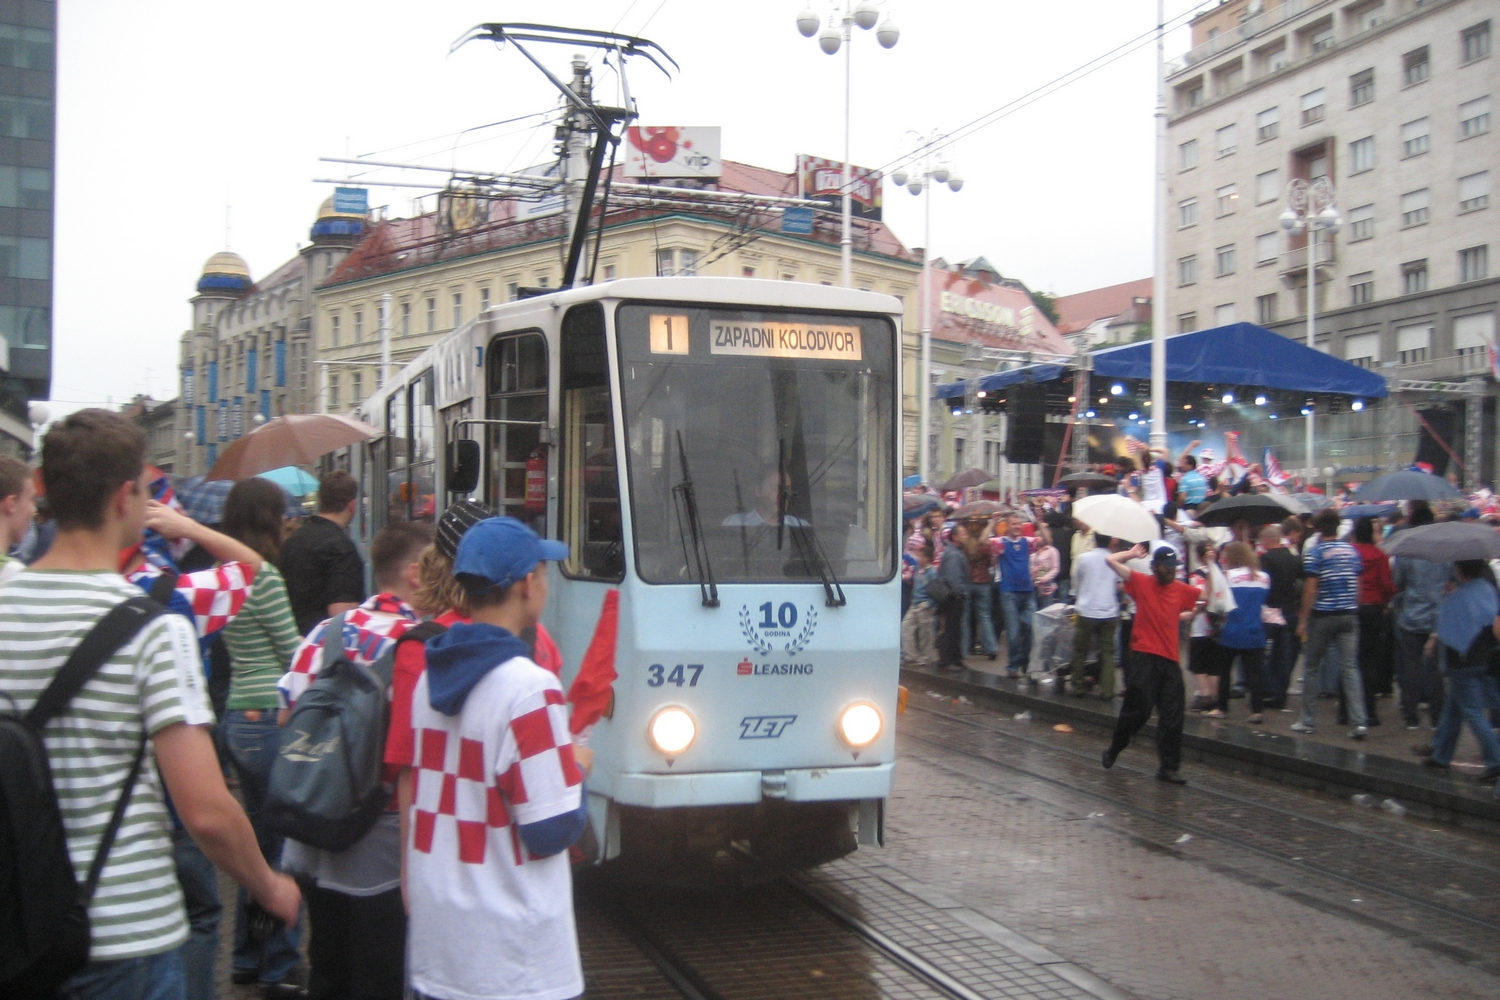 Zagreb articulated tram 347 on extra line 1 in the square Trg bana Josipa Jelačića (2008).